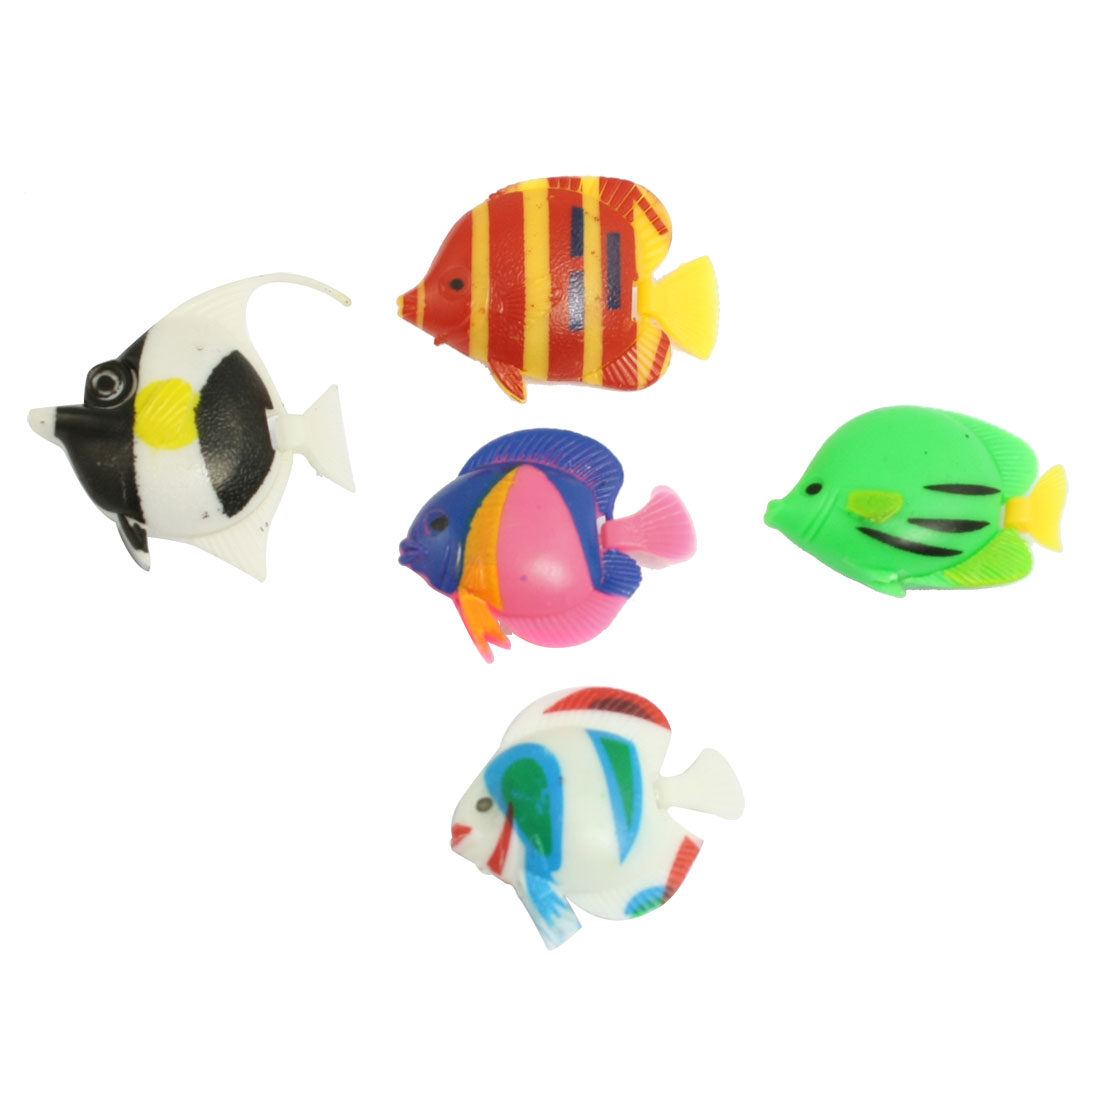 Aquarium Decoration Multicolor Floating Plastic Fish 5 Pcs